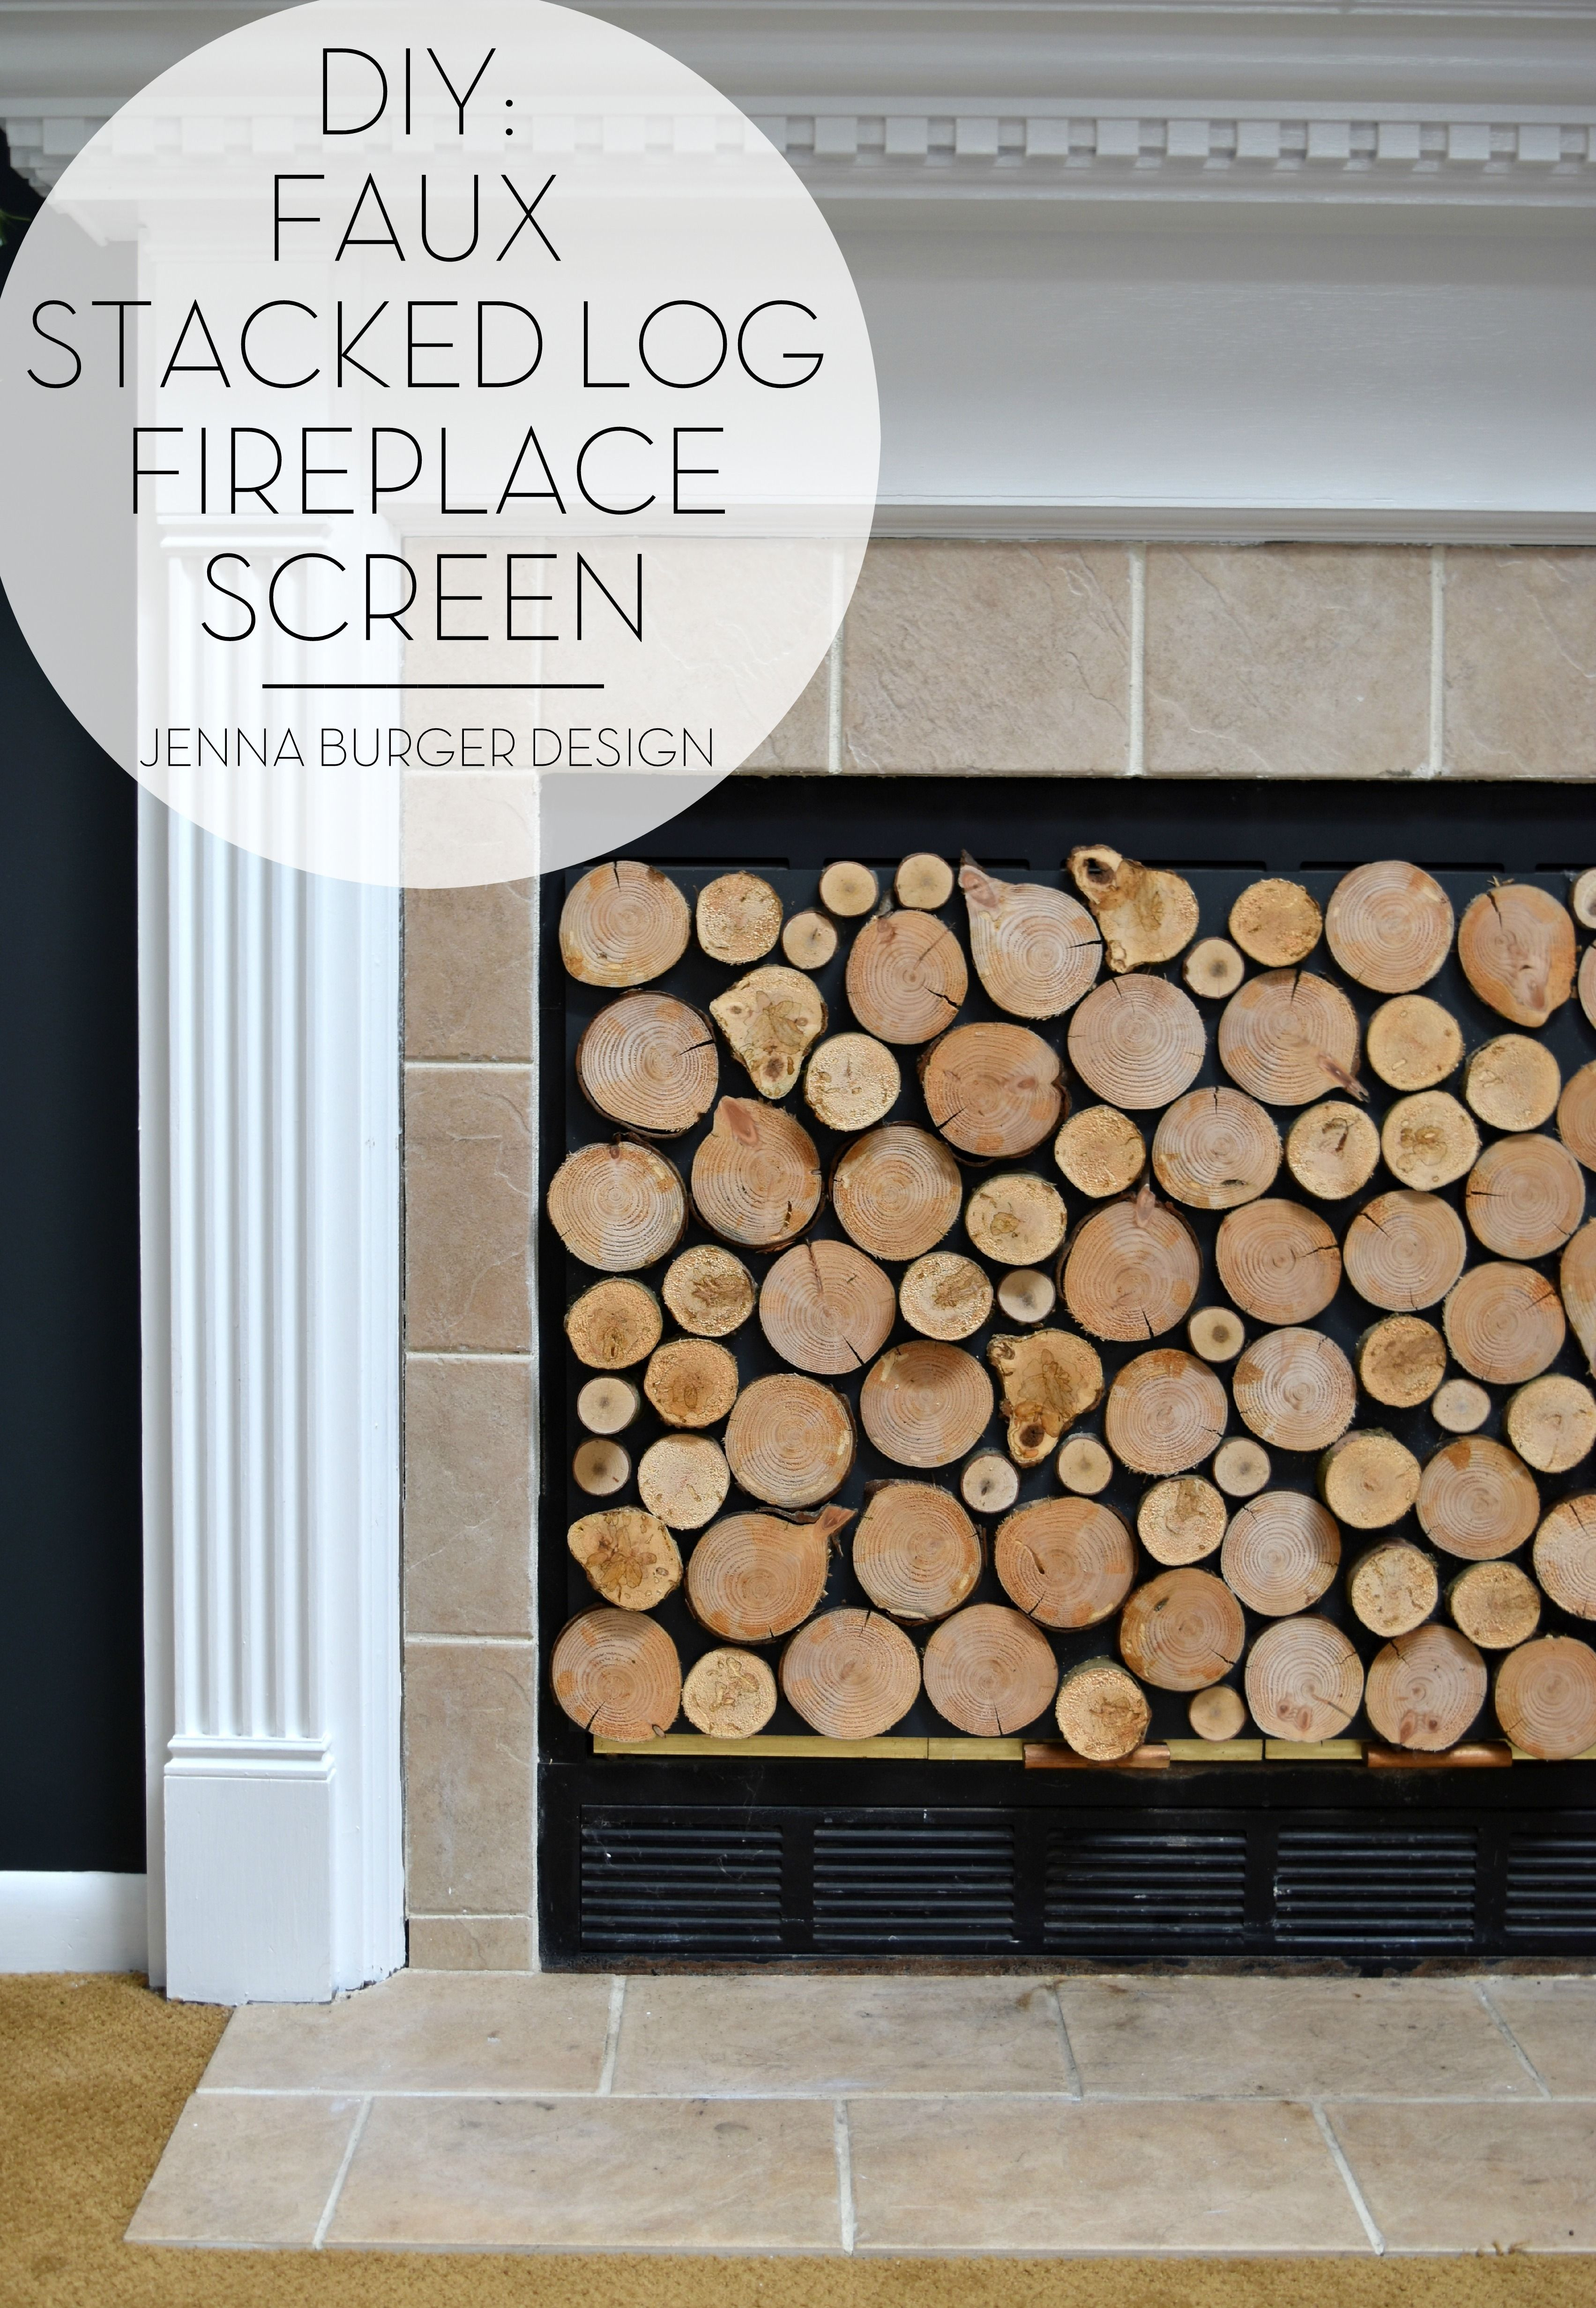 wooden fireplace screen. DIY  Tutorial on how to make a FAUX STACKED LOG FIREPLACE SCREEN check out